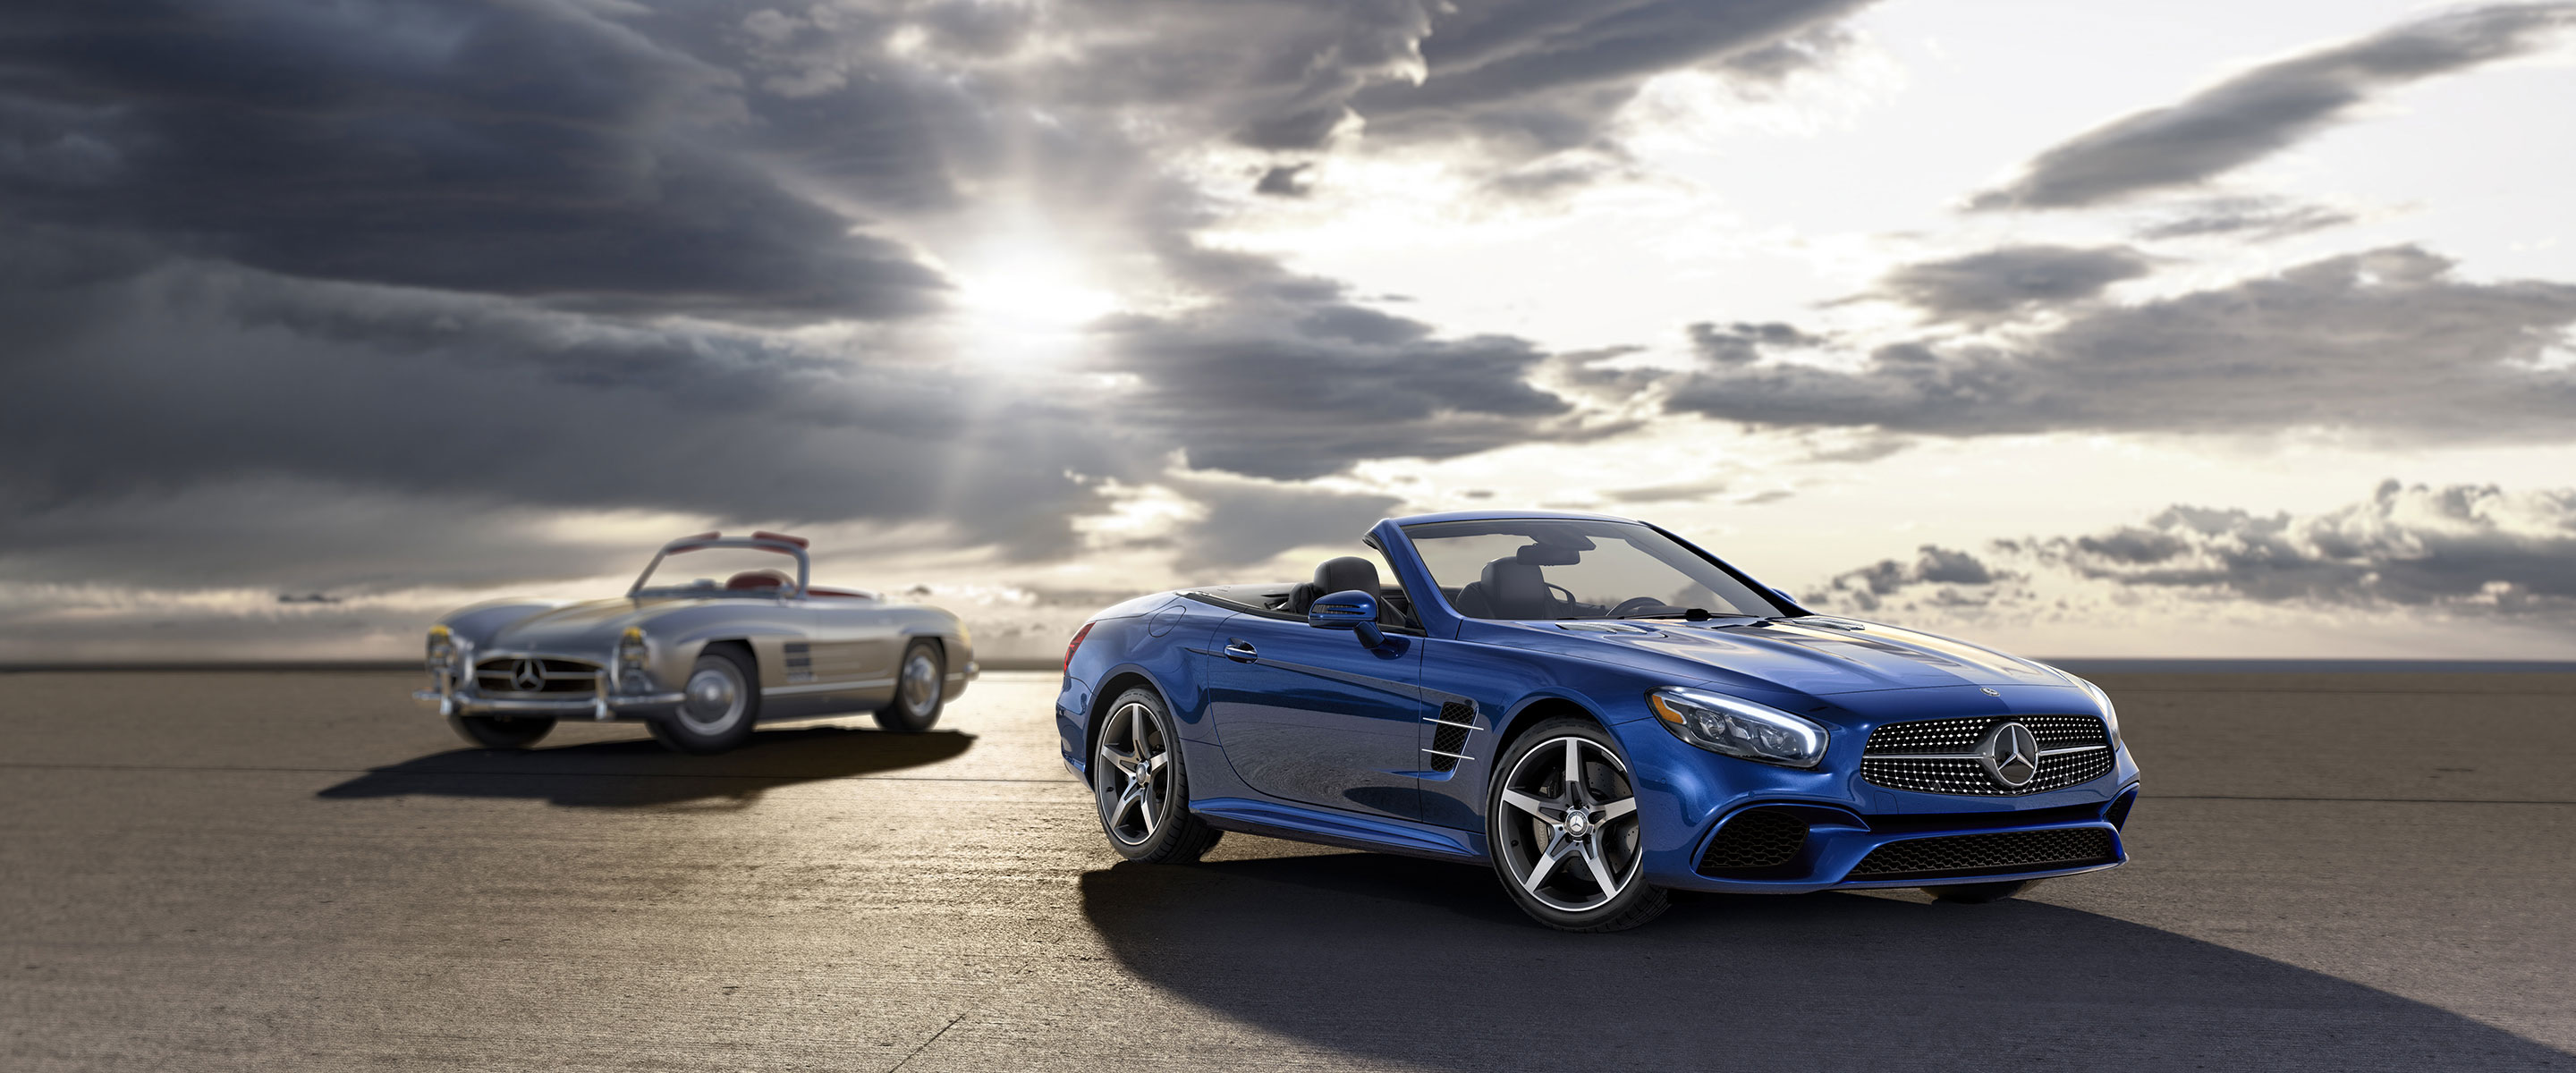 New mercedes benz sl roadster buy lease and finance for Special lease offers mercedes benz